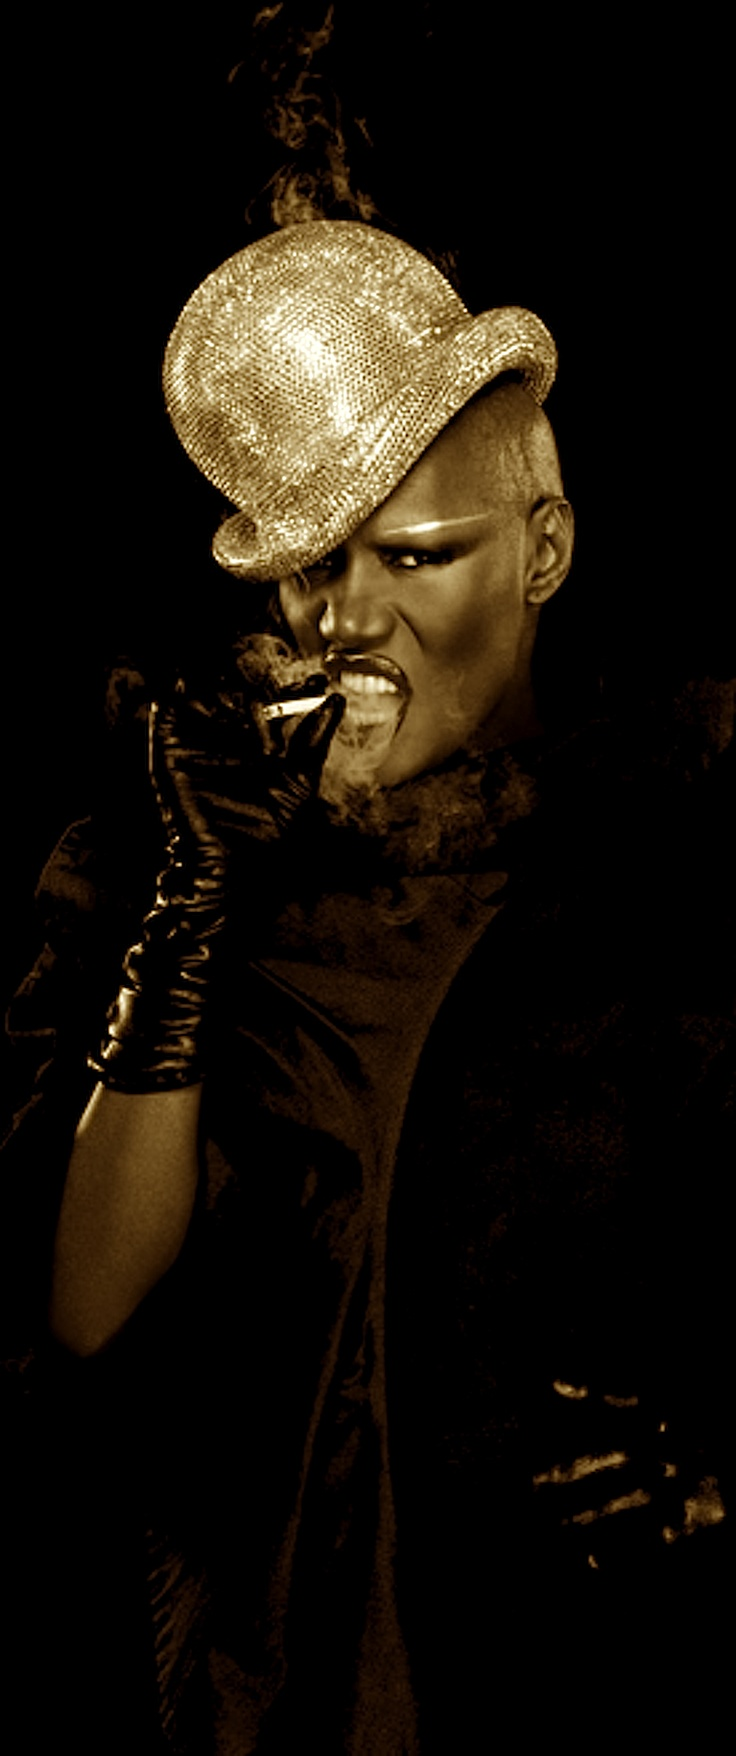 Madonna who? Lady gaga who, this where they got their style from...Grace Jones